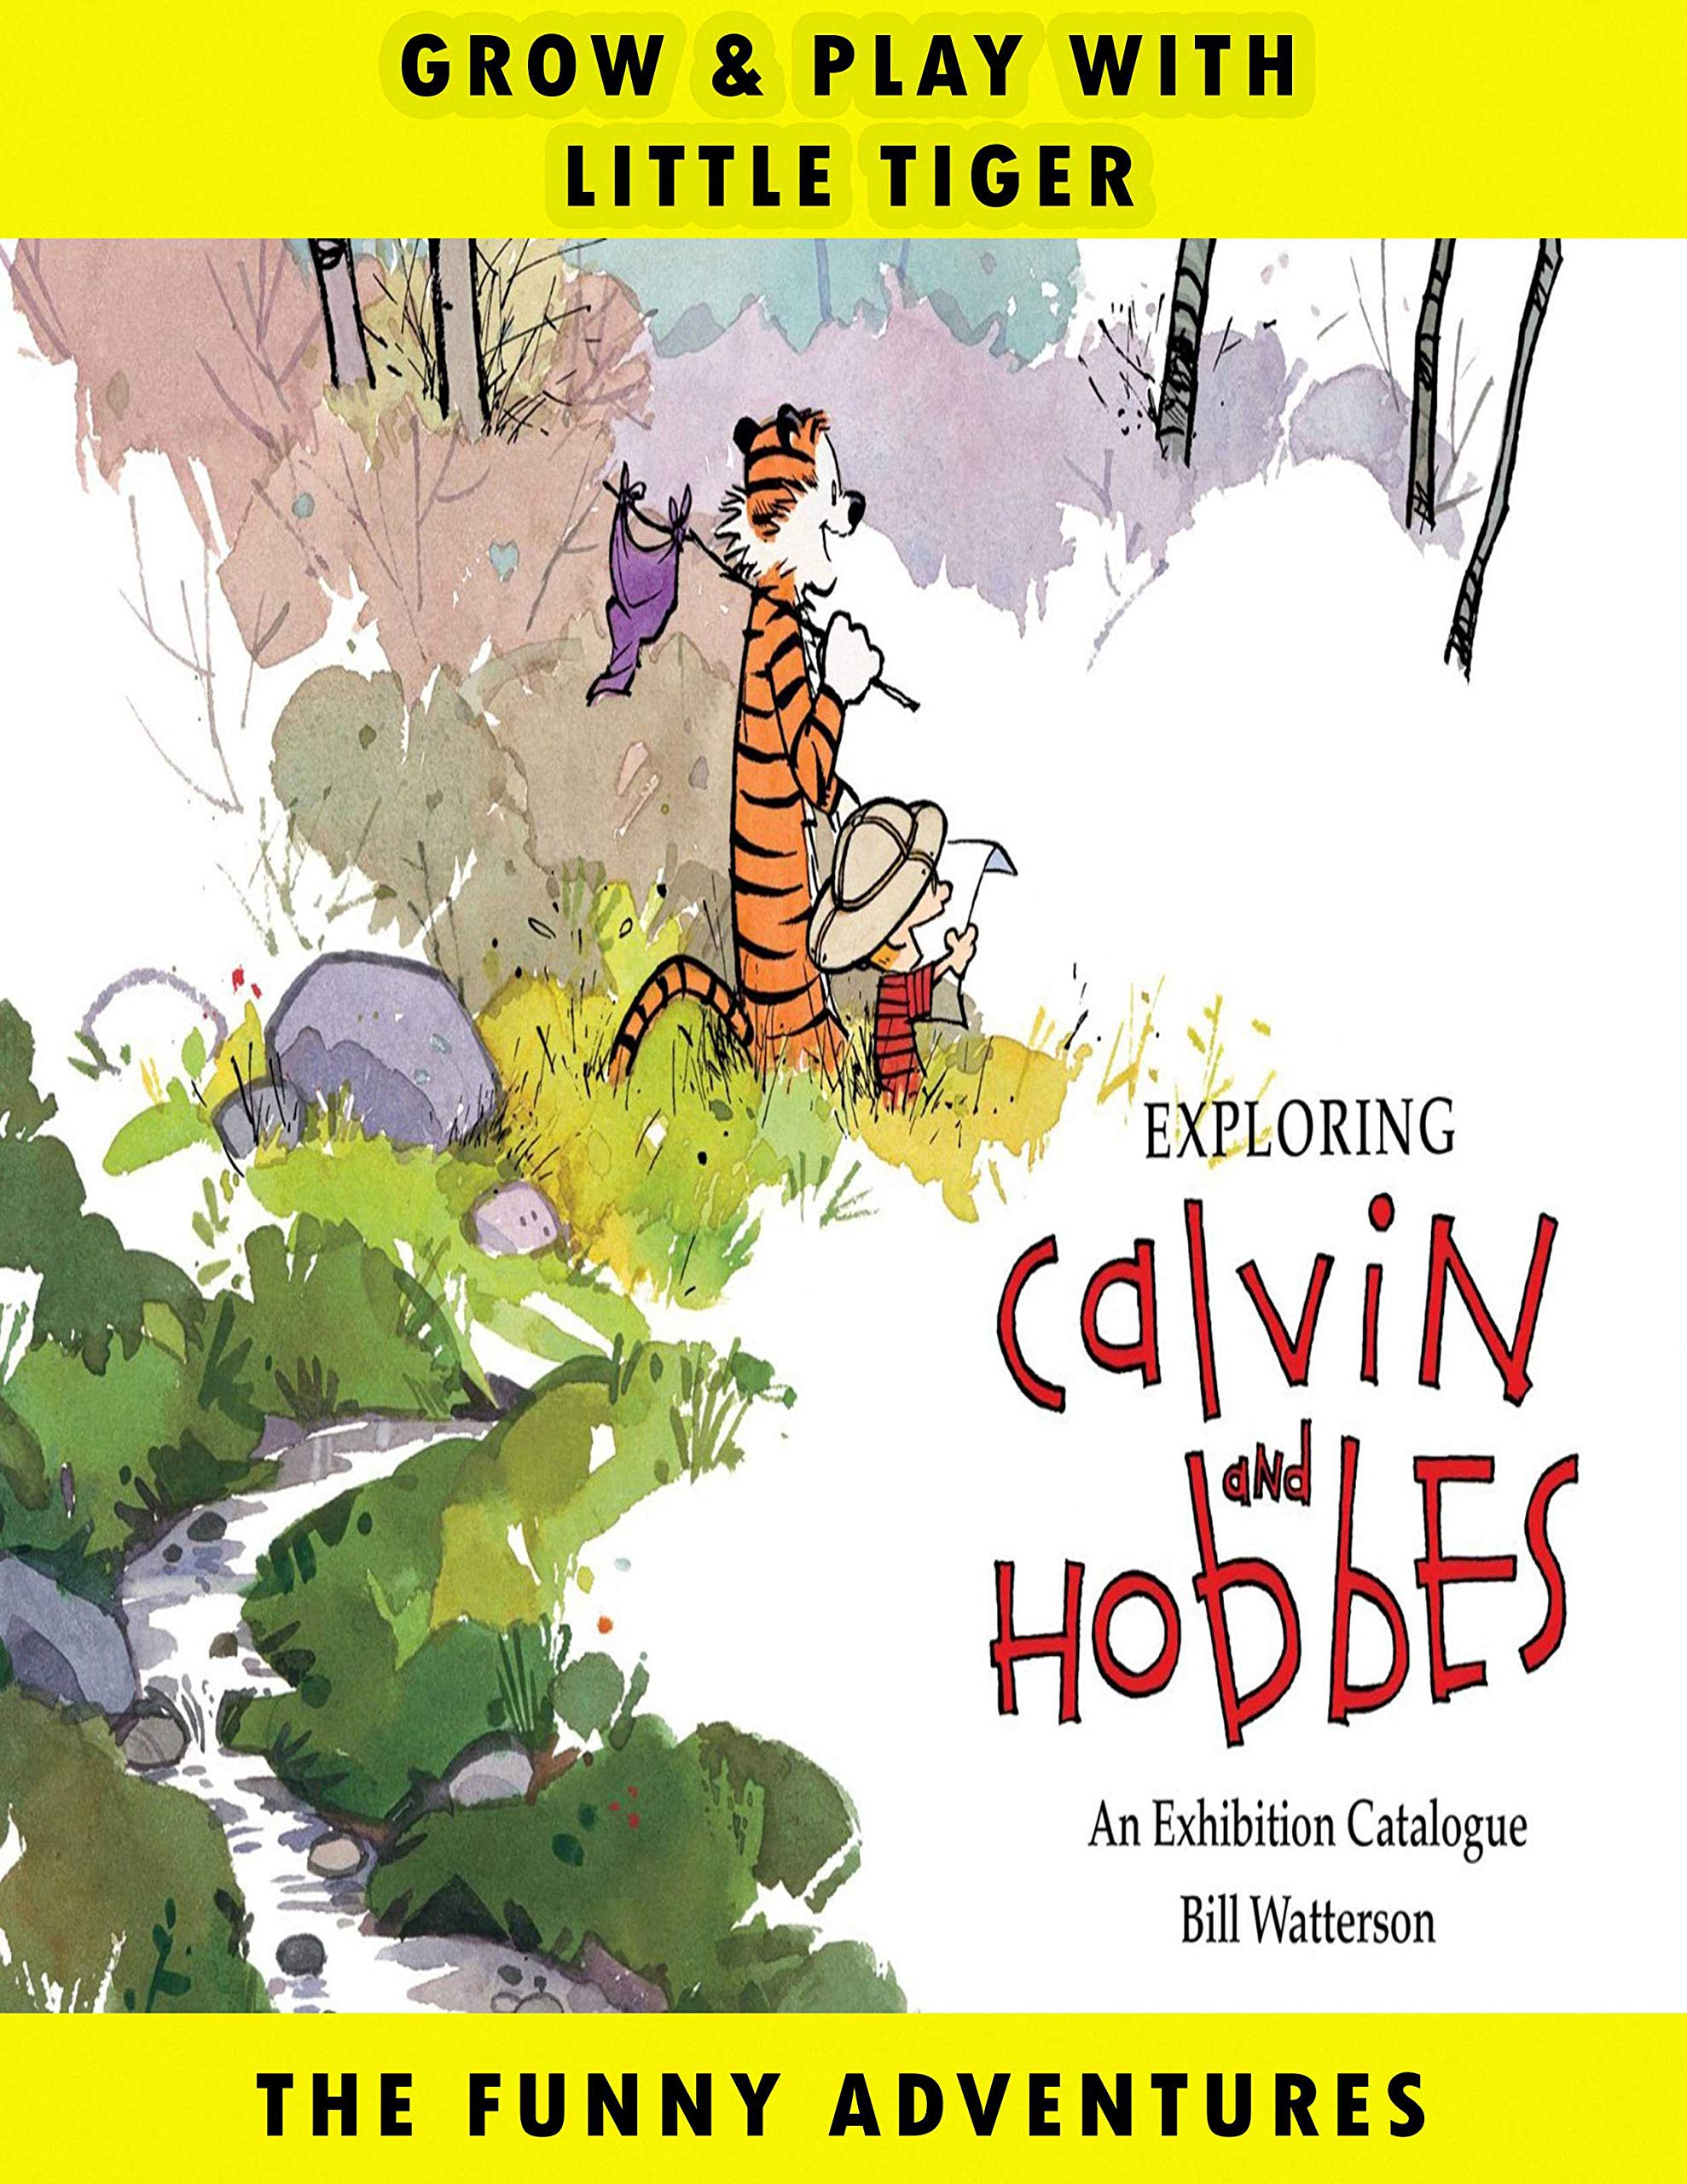 Little Tiger: Vol 14 - Great Calvin Adventure And Hobbes Cartoon Comics Books - For Kids, Boys , Girls , Fans , Adults